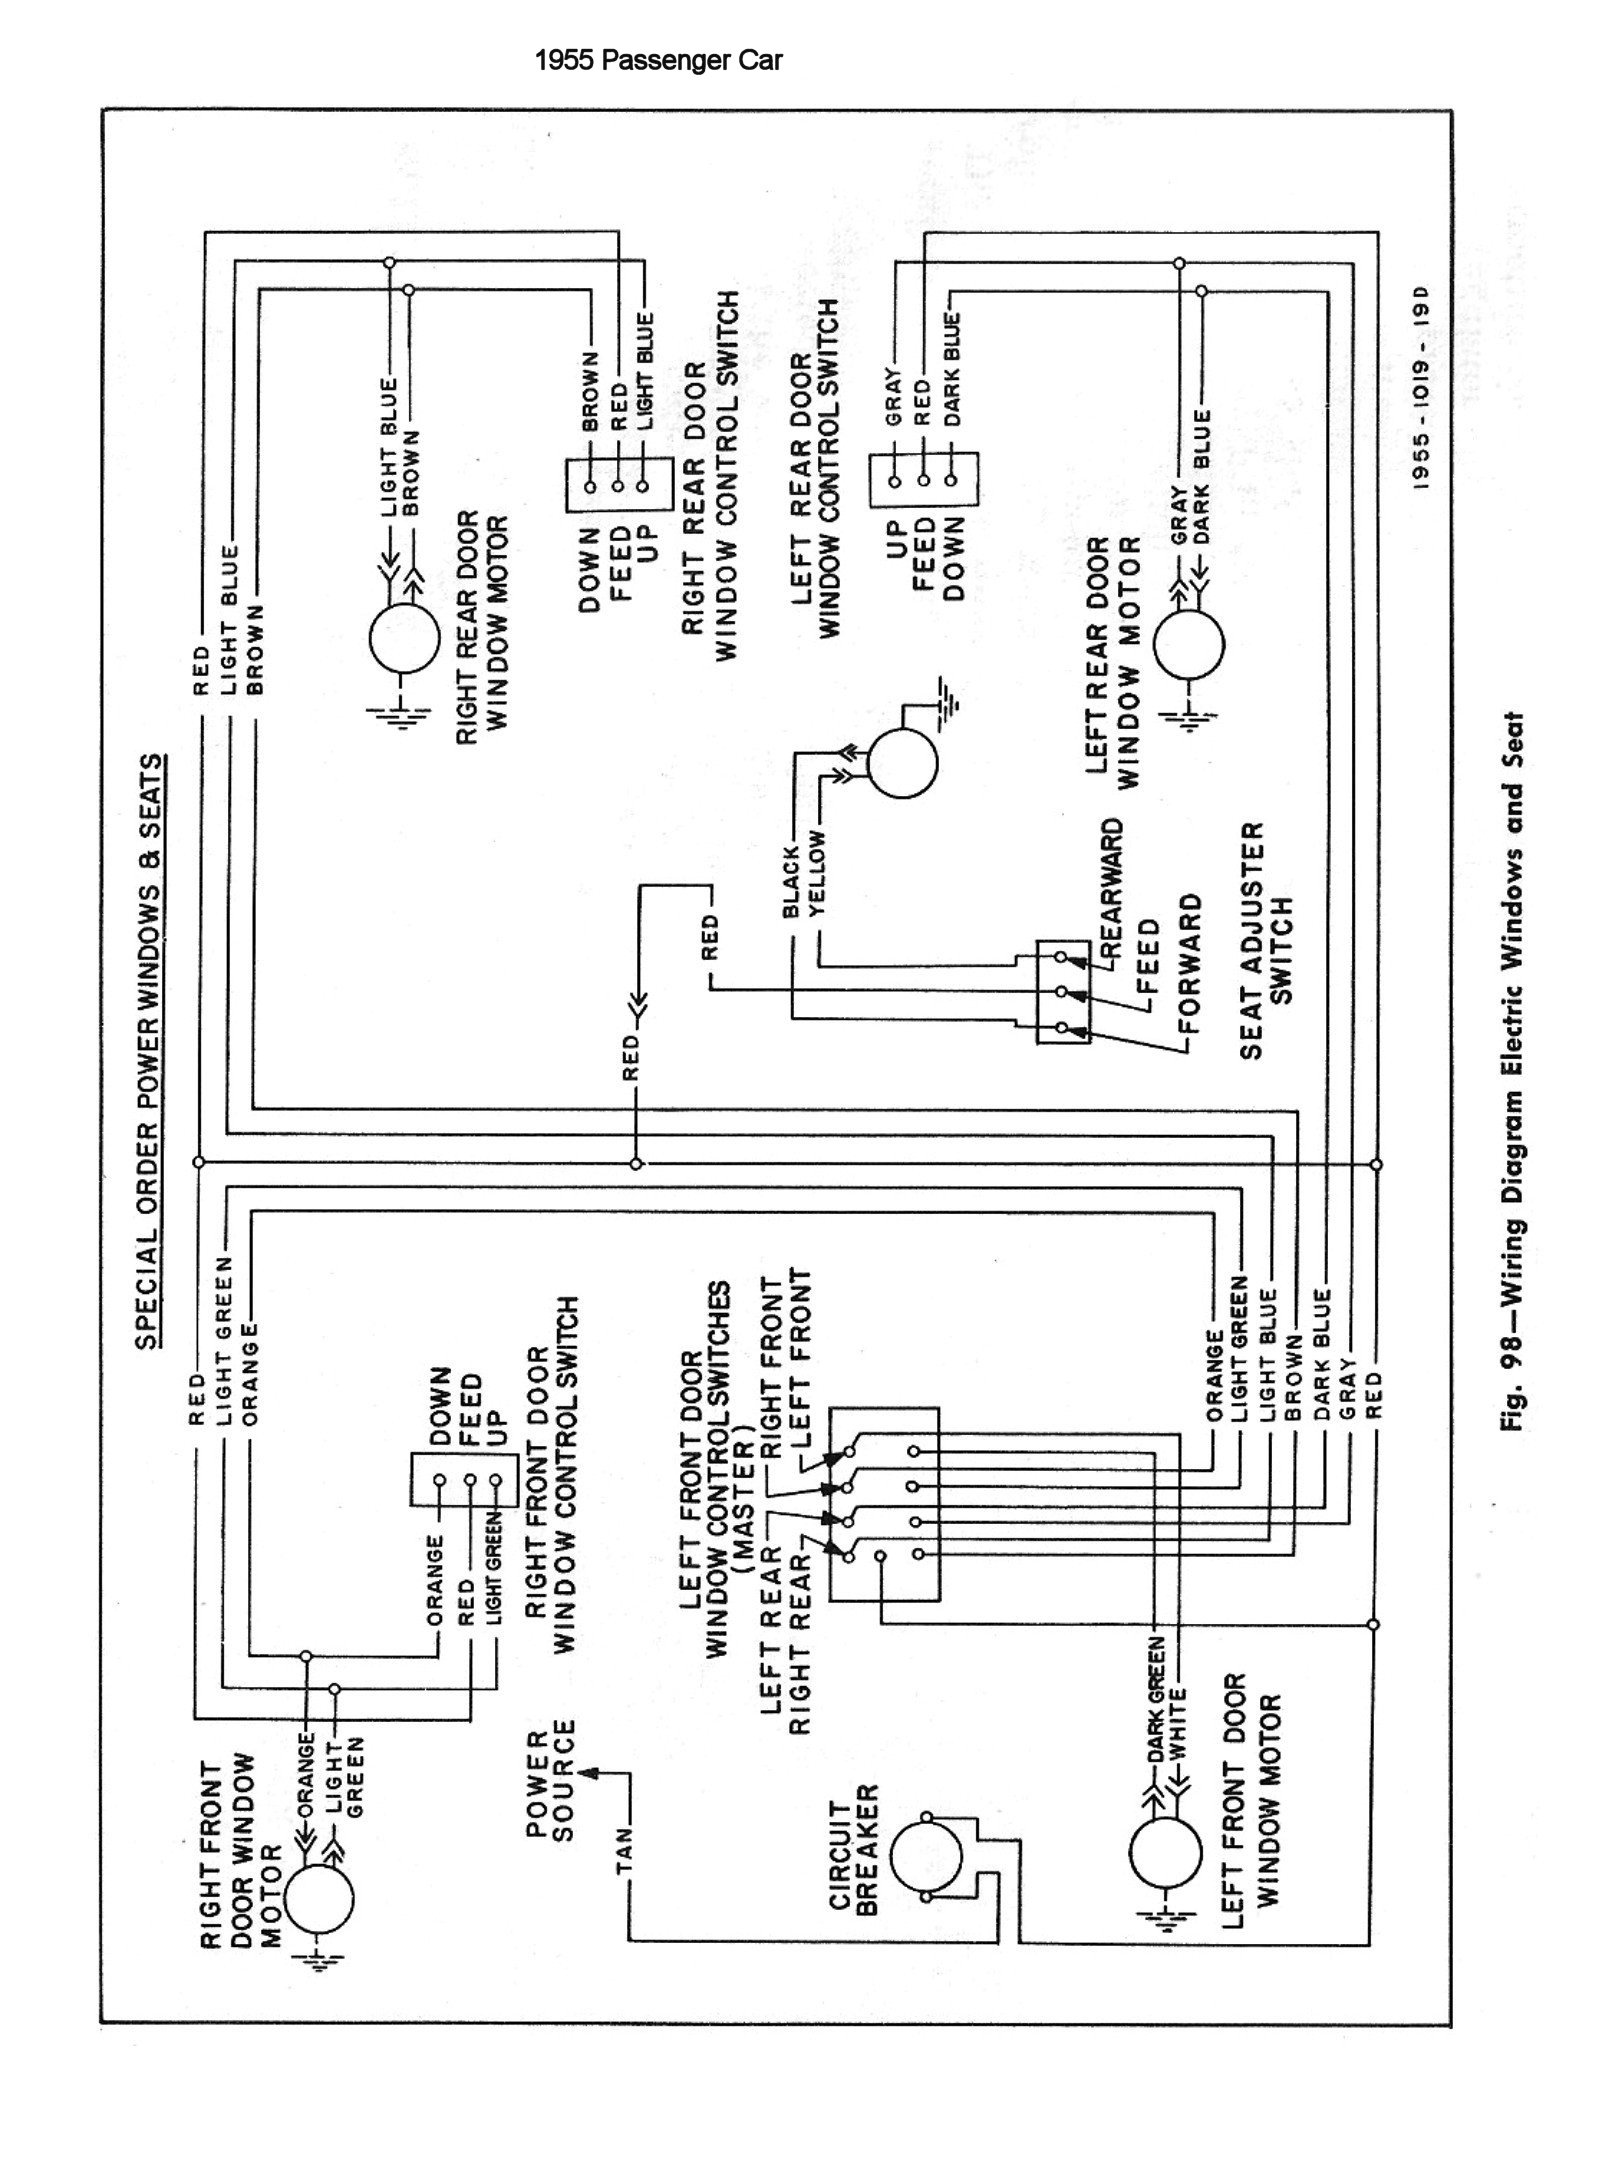 Chevy K10 Truck Color Wiring Diagram